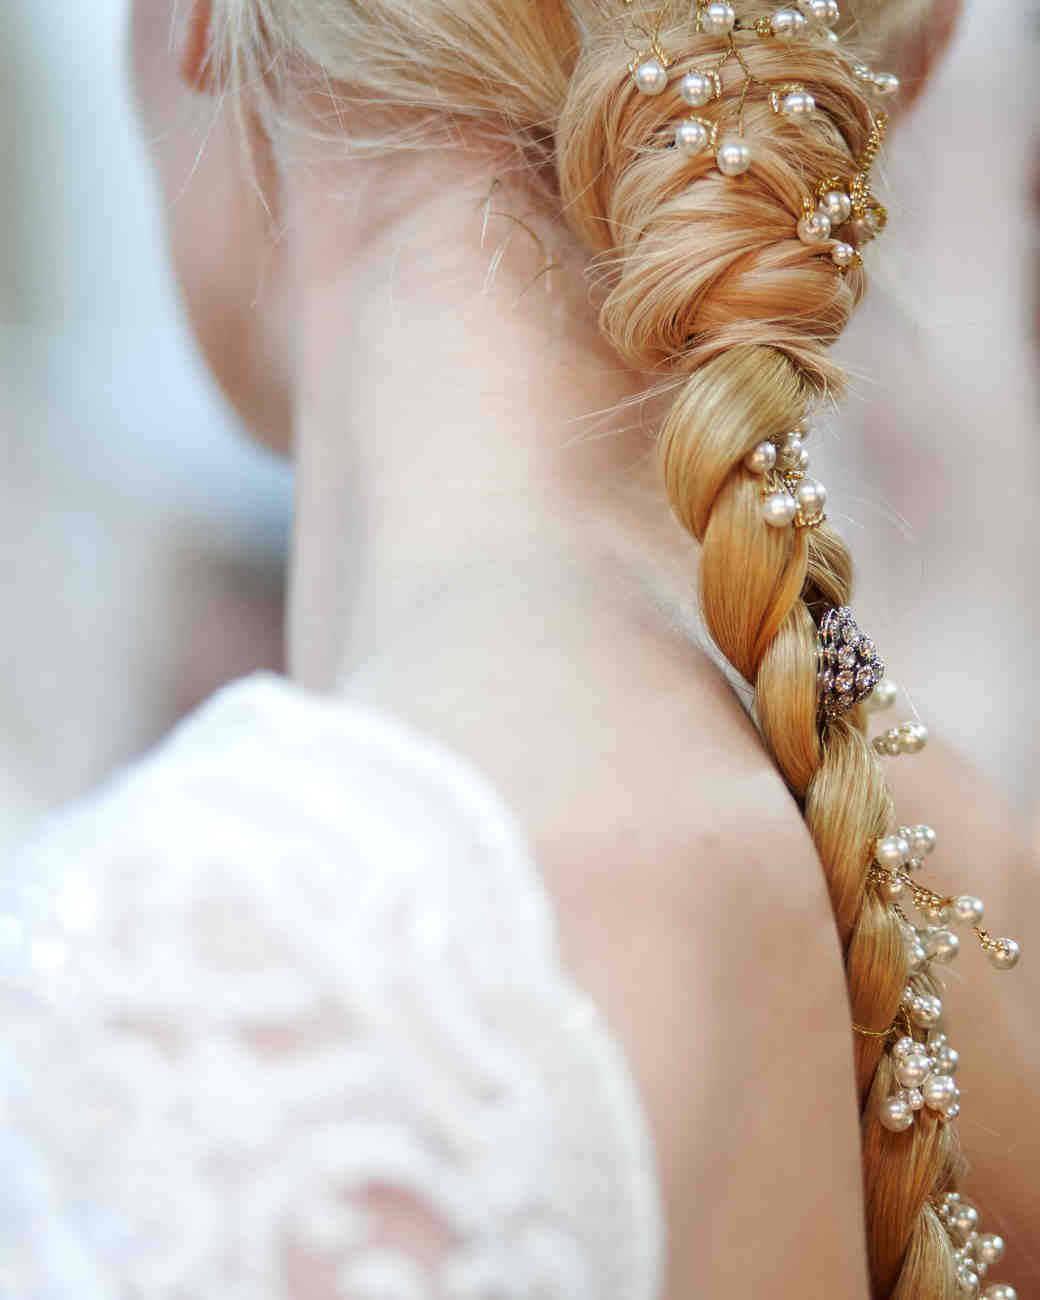 Wedding Hair Style Video: Wedding Hairstyles For Bows, Buds, Tiaras, And More From